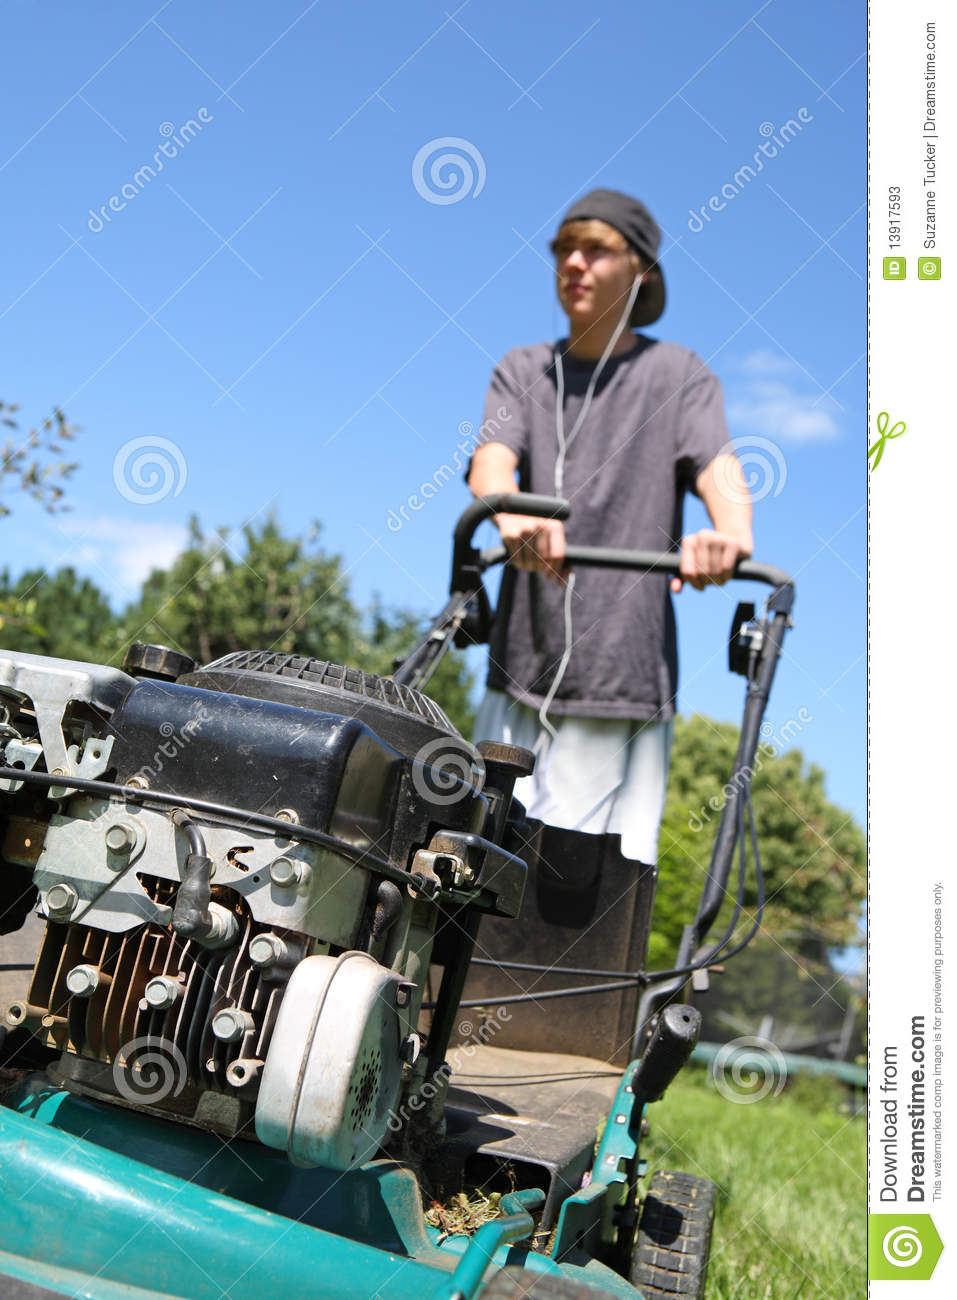 Teenage Boy Mowing Lawn Stock Image Image Of Child